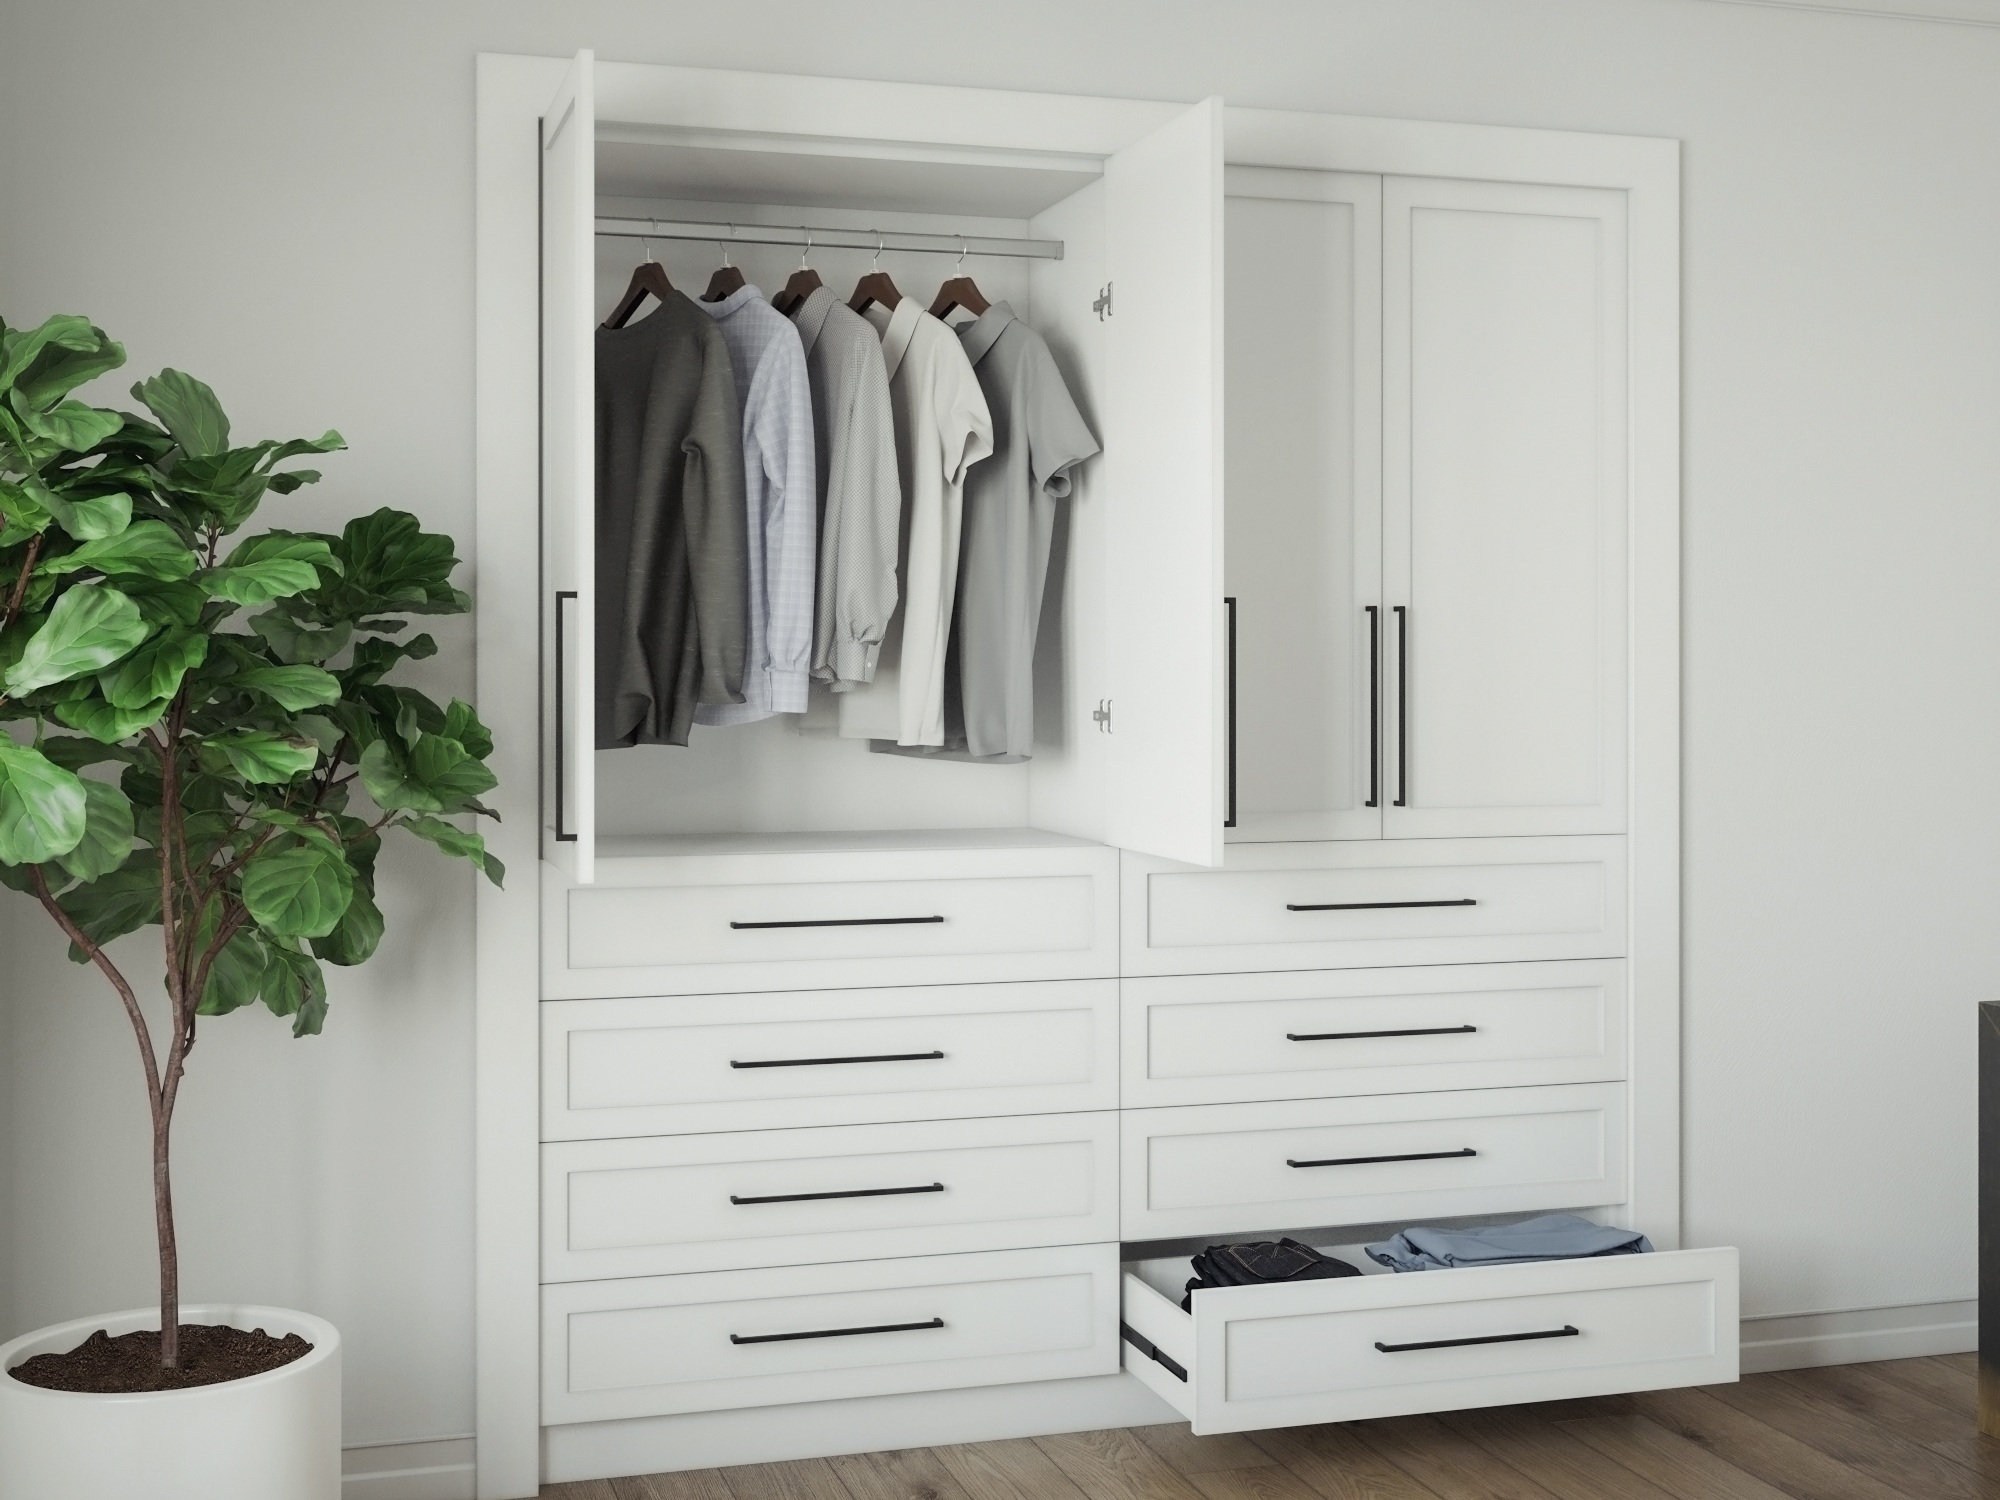 Custom Closet Designfor New Homes - Integrate luxury closets into your residential interior design. Our team is experienced in the design and installation of modern customized closets for new home construction and remodeling.